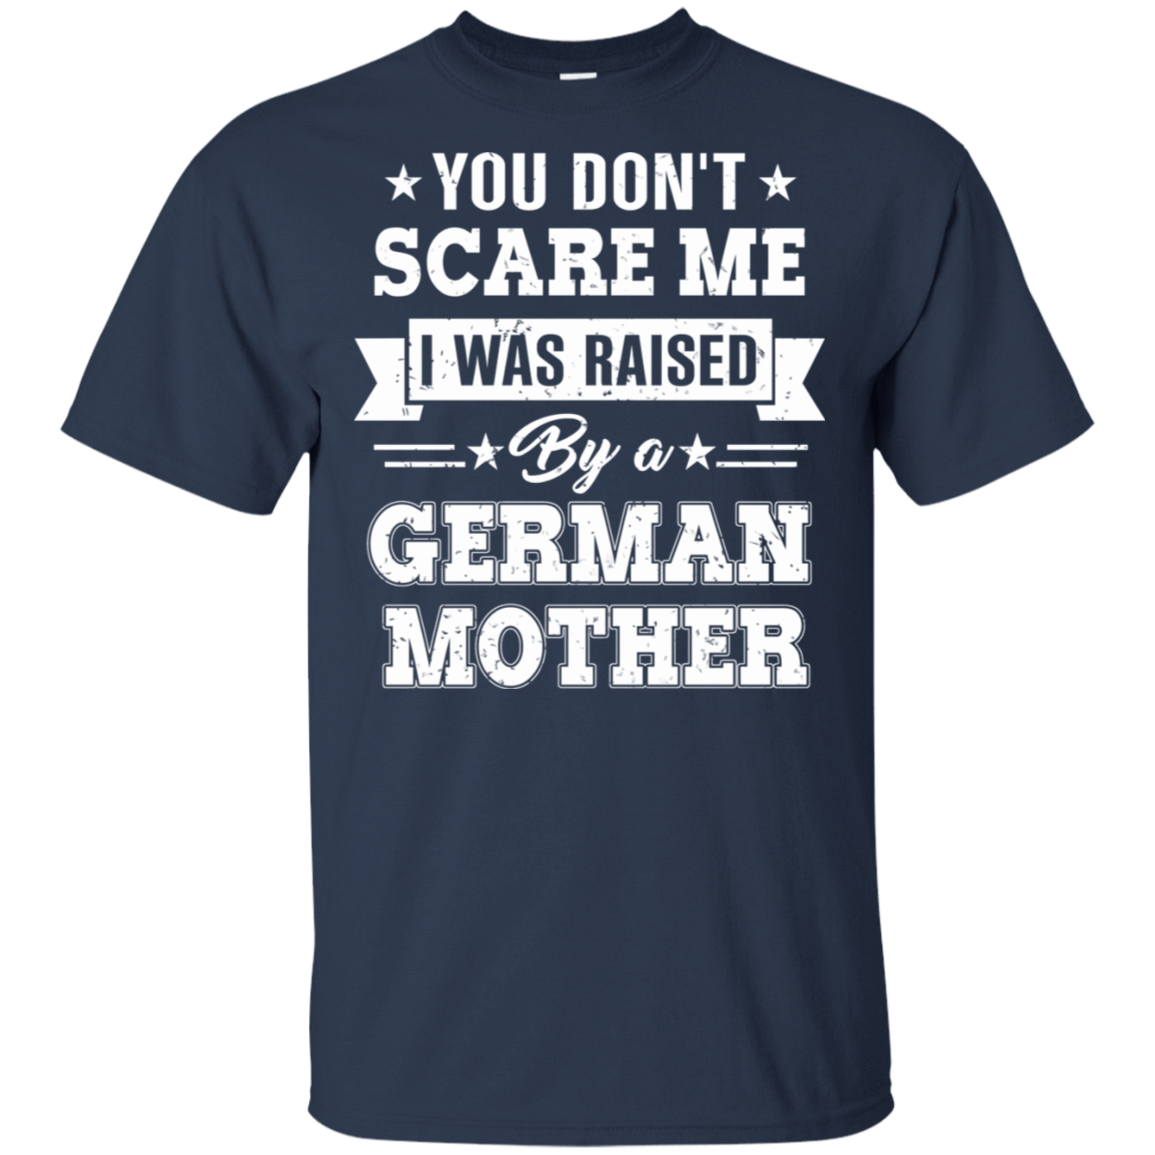 You Don't Scare Me I Was Raised By A German Mother 22-111-72513781-250 - Tee Ript